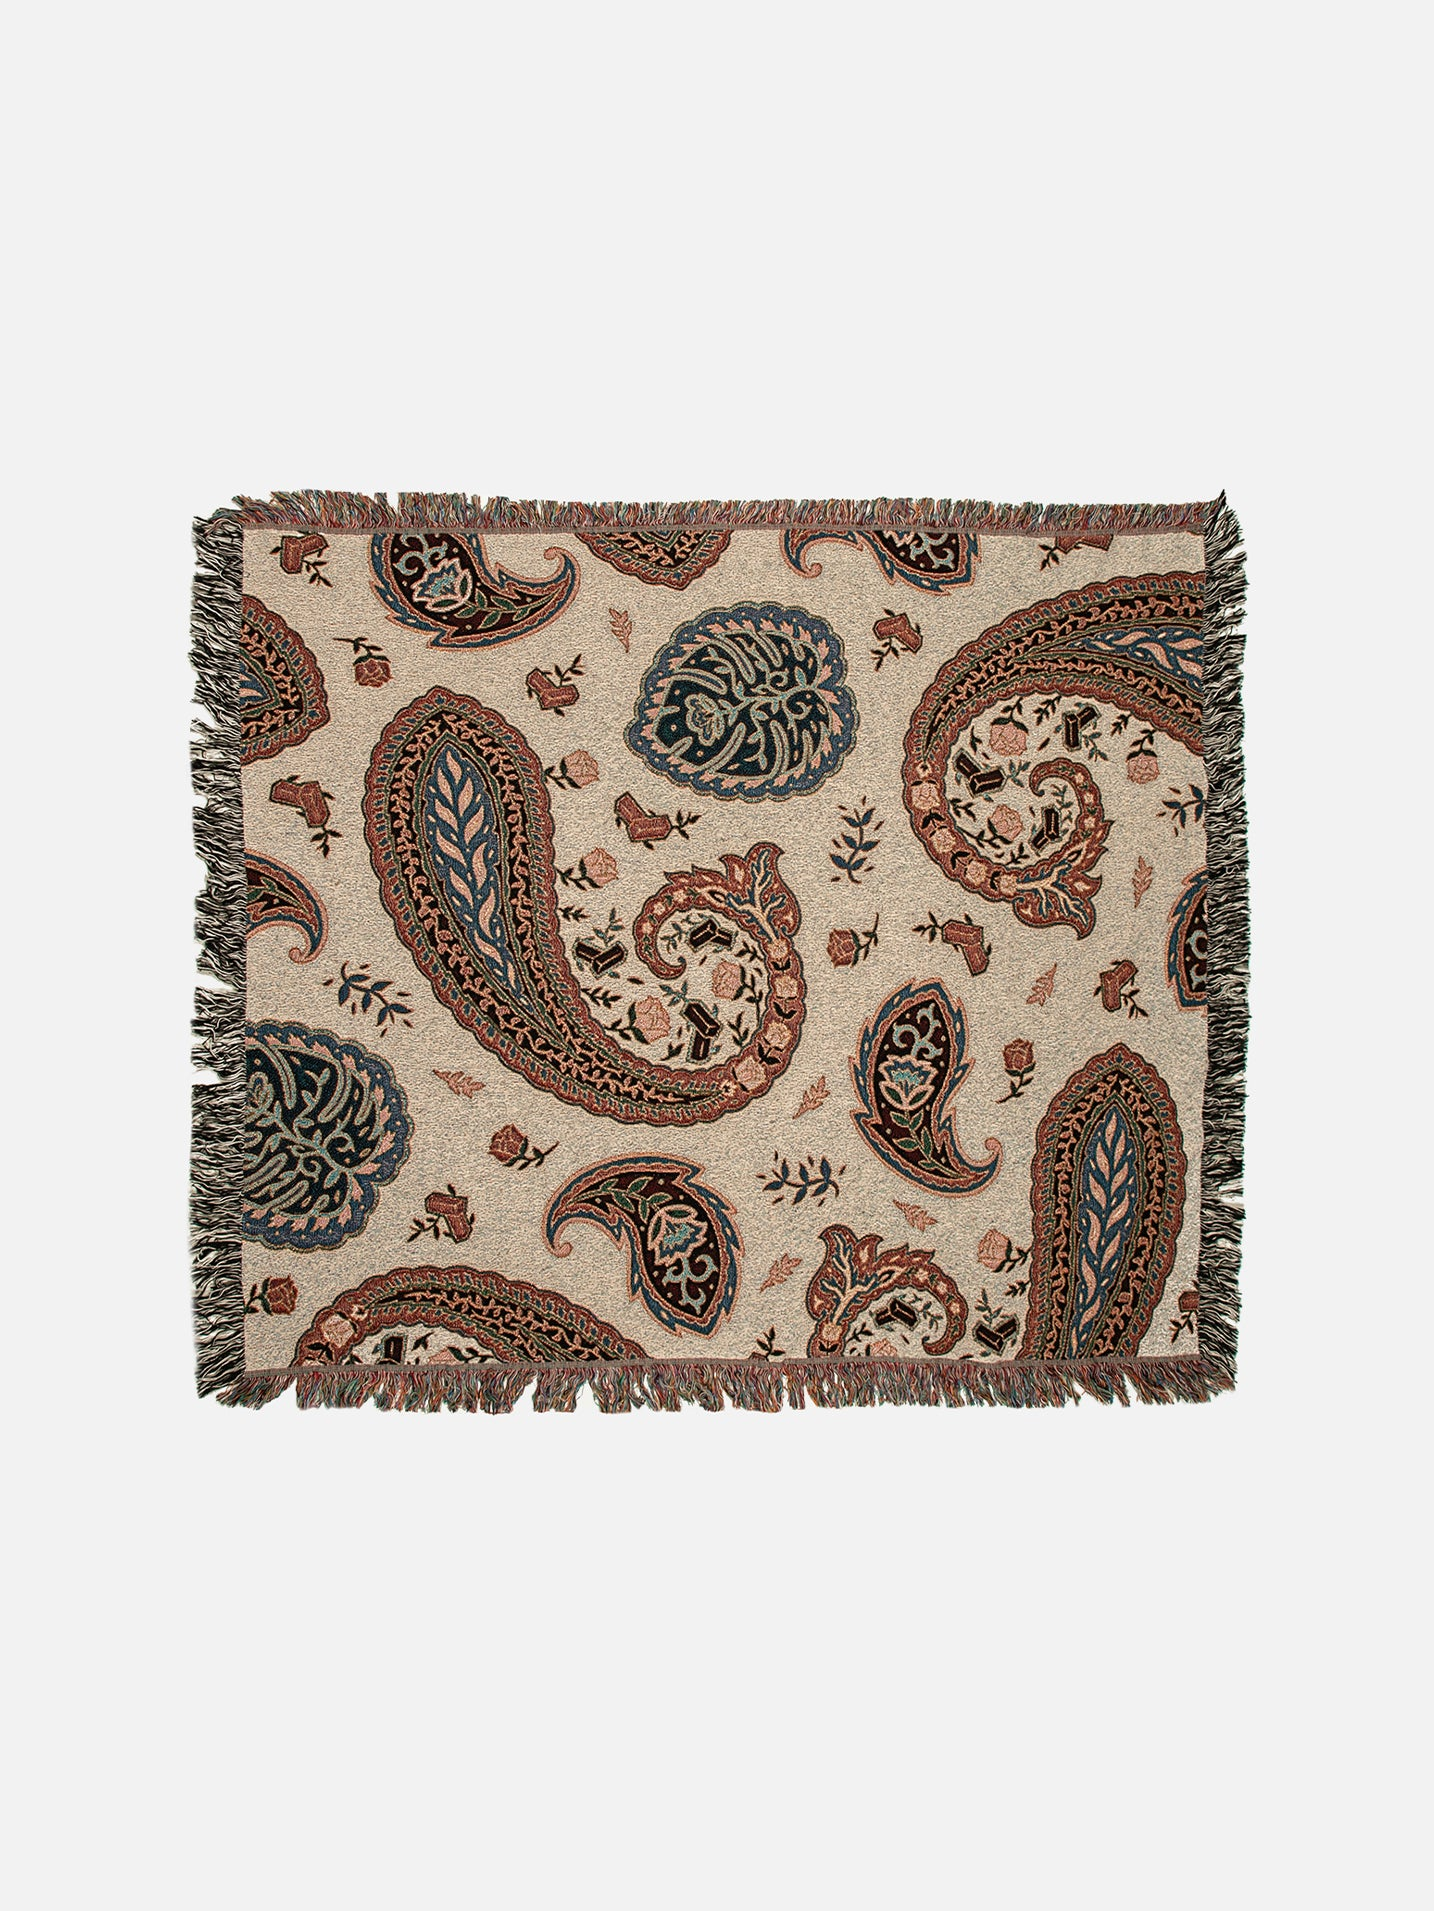 Justin's Paisley Woven Throw Blanket